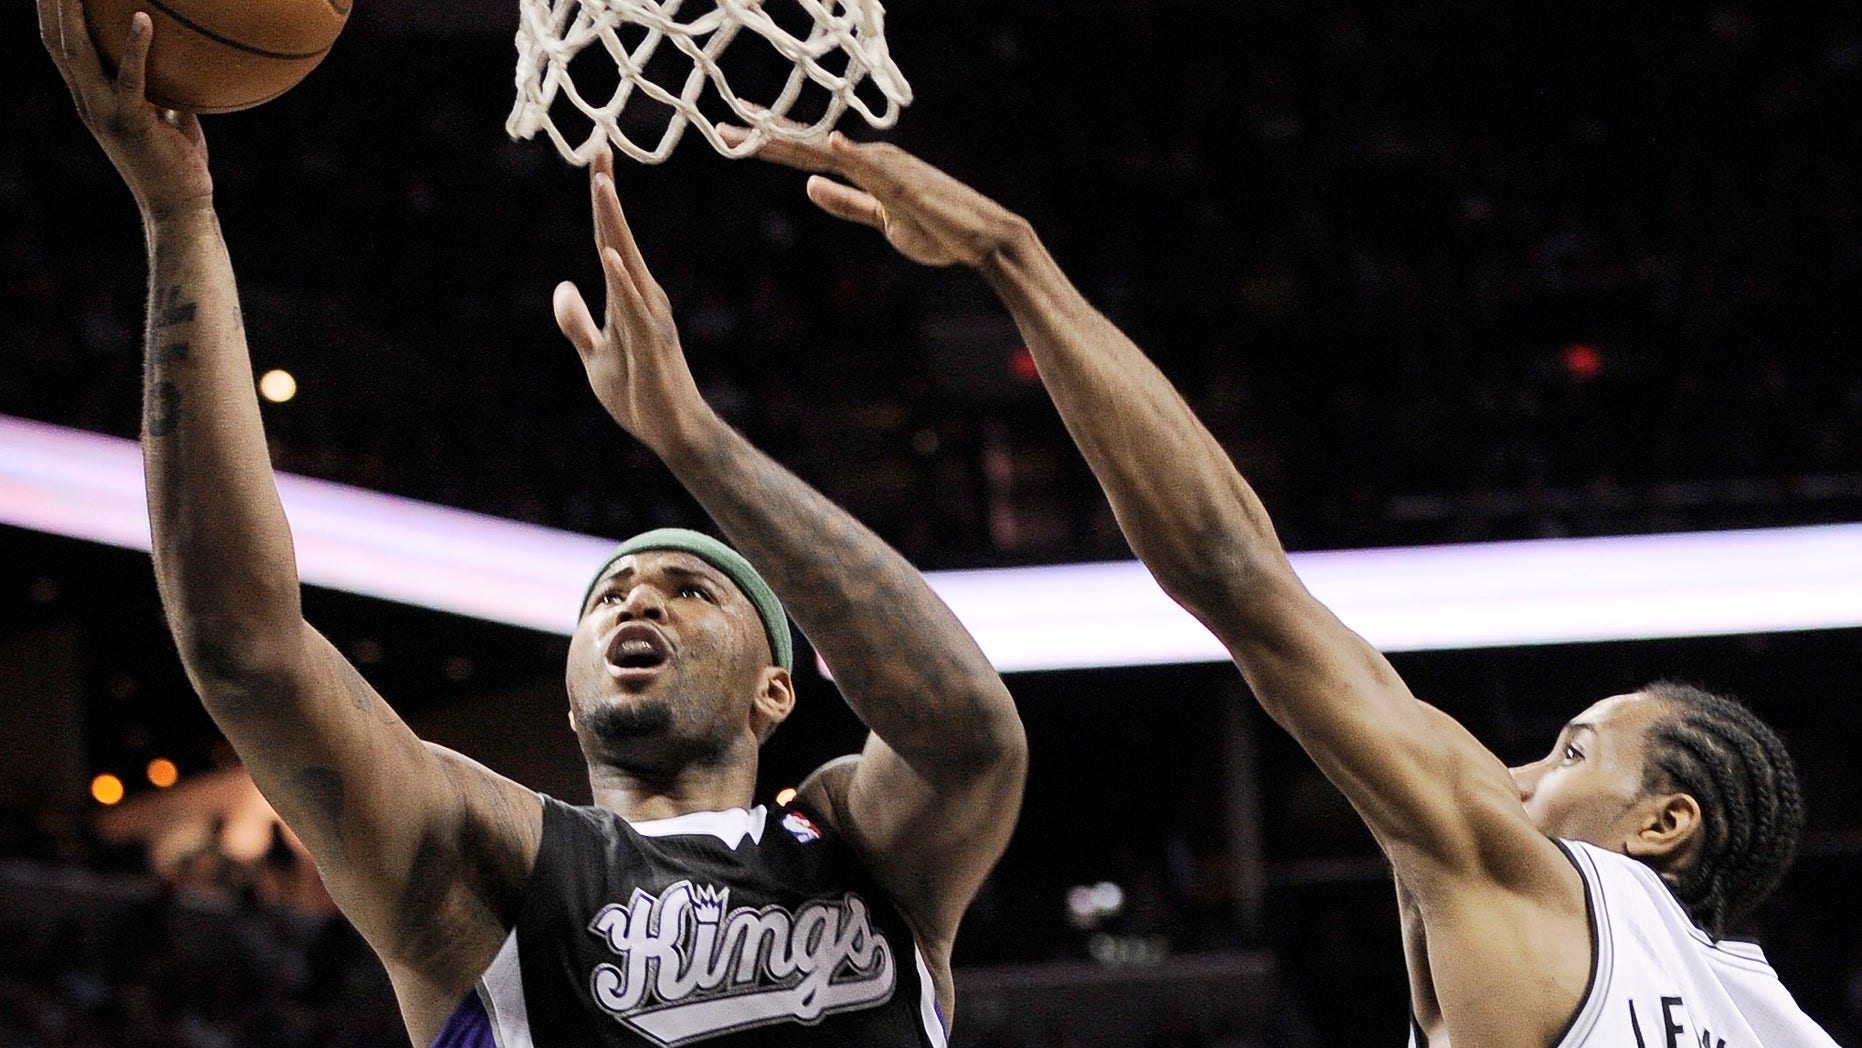 Sacramento Kings' DeMarcus Cousins, left, shoots against San Antonio Spurs' Kawhi Leonard during the second half of an NBA basketball game, Friday, April 12, 2013, in San Antonio. San Antonio won 108-101. (AP Photo/Darren Abate)